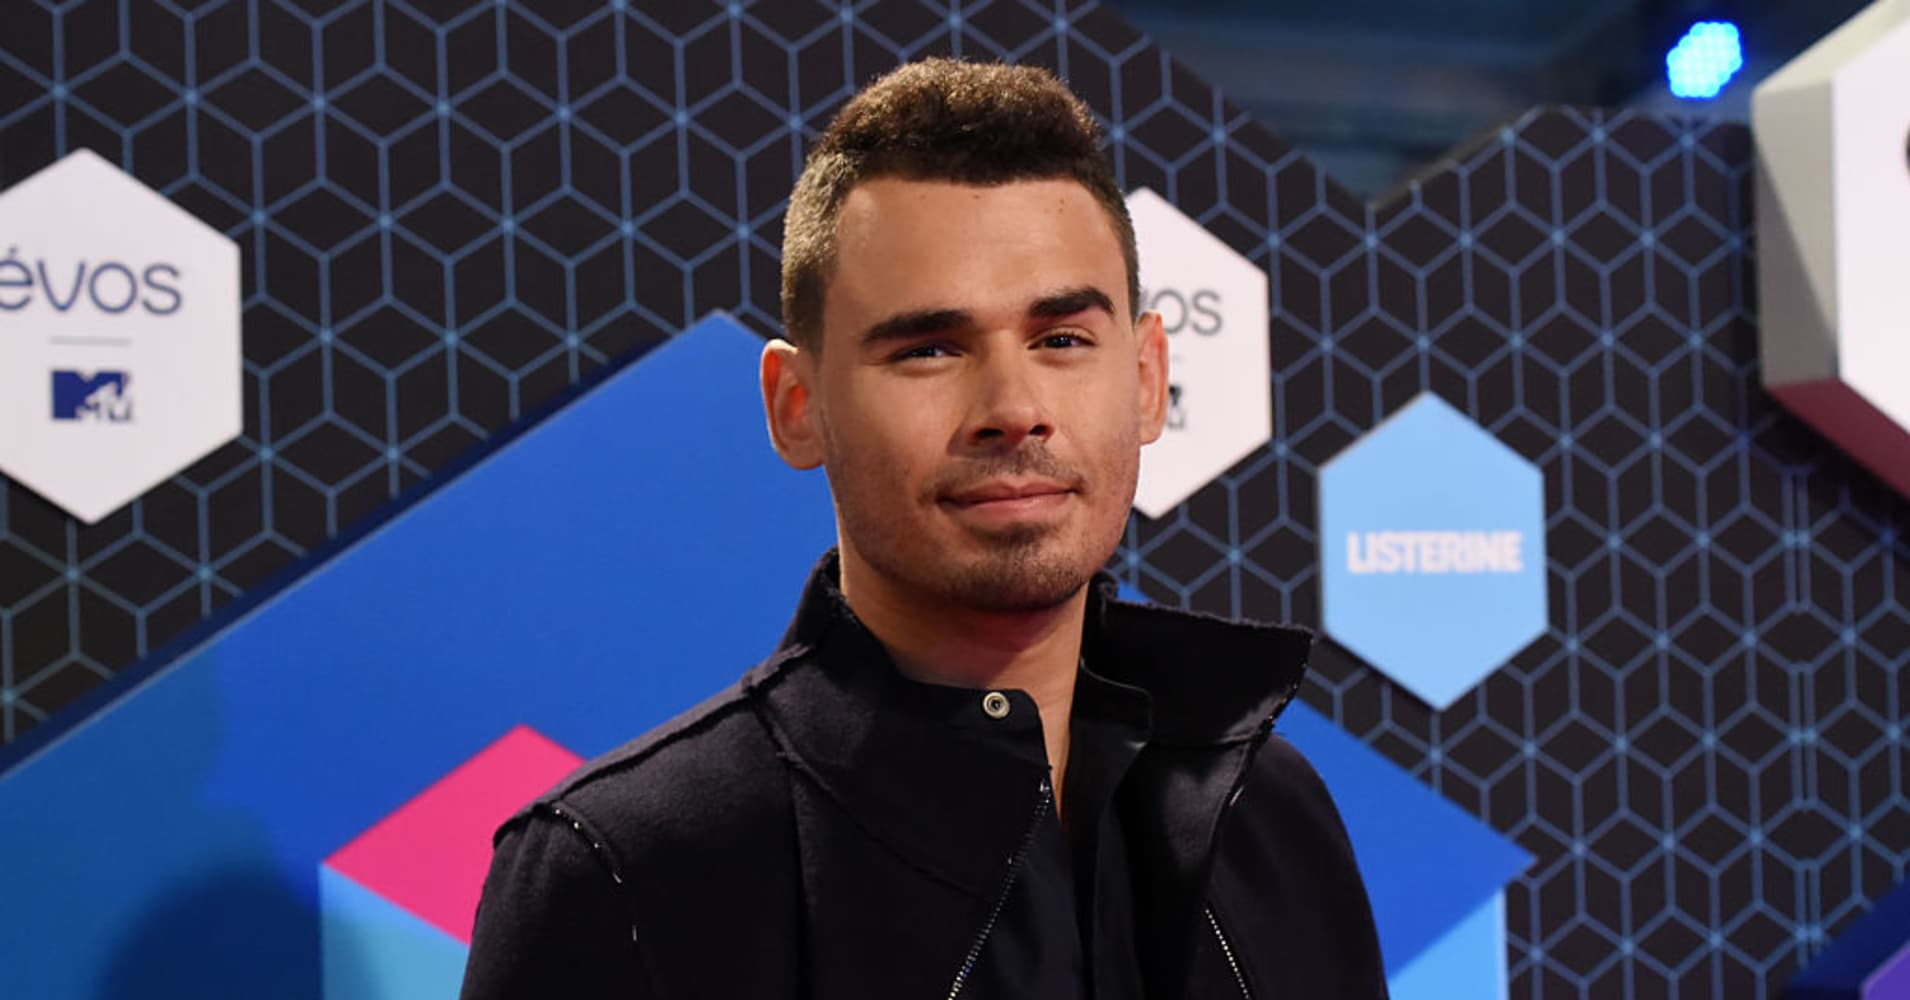 Afrojack attends the MTV Europe Music Awards 2016 on November 6, 2016 in Rotterdam, Netherlands.